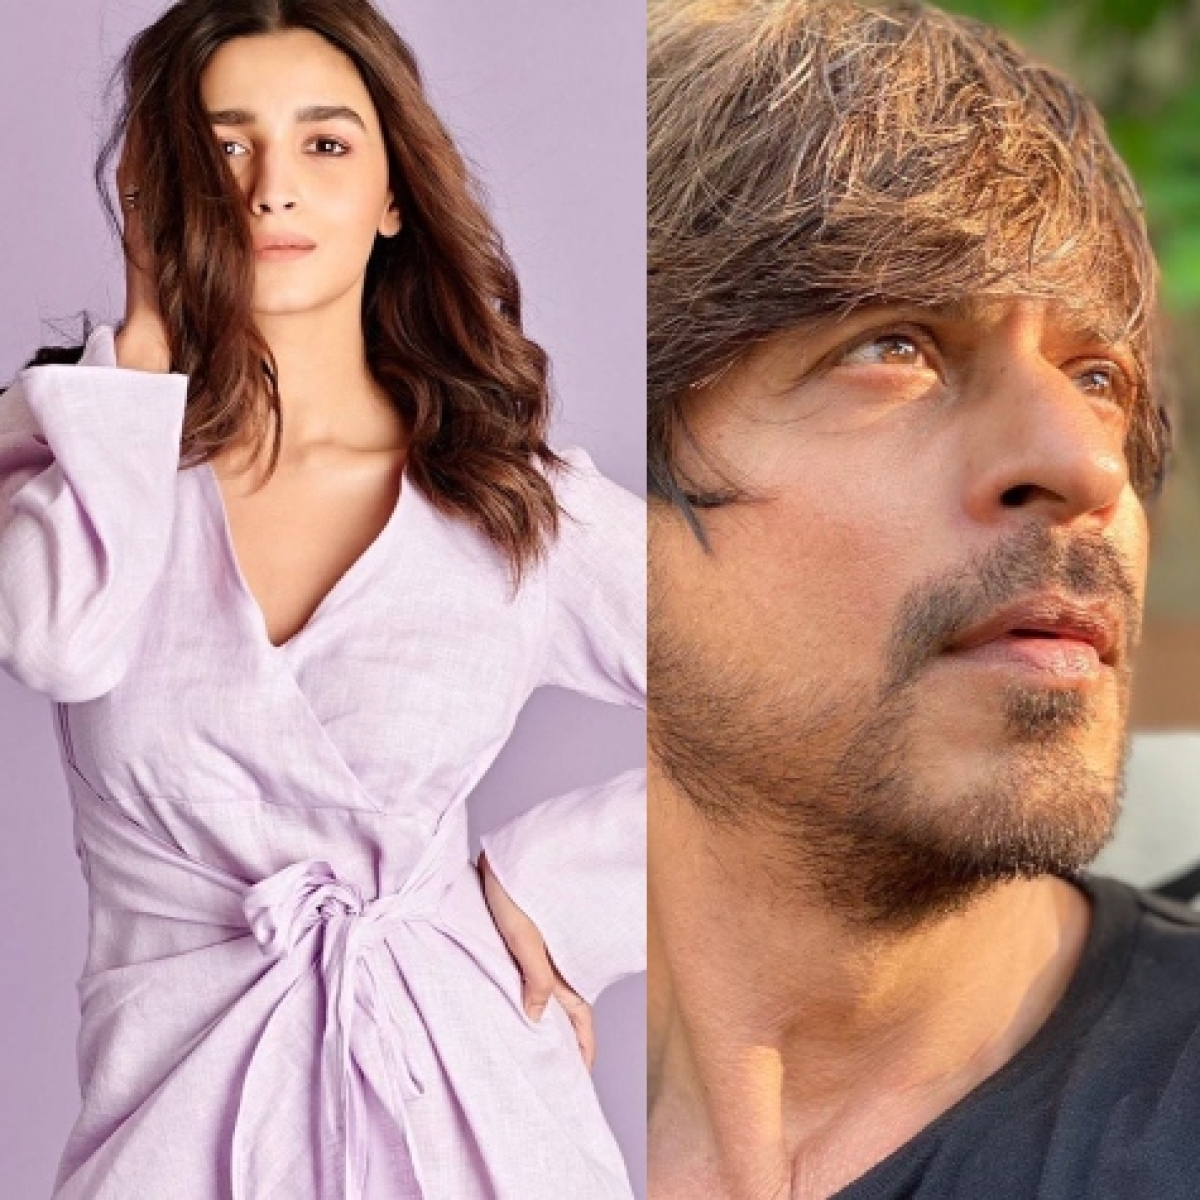 I For India: Shah Rukh Khan, Kareena Kapoor, Alia Bhatt and other Bollywood stars to attend virtual event on May 3